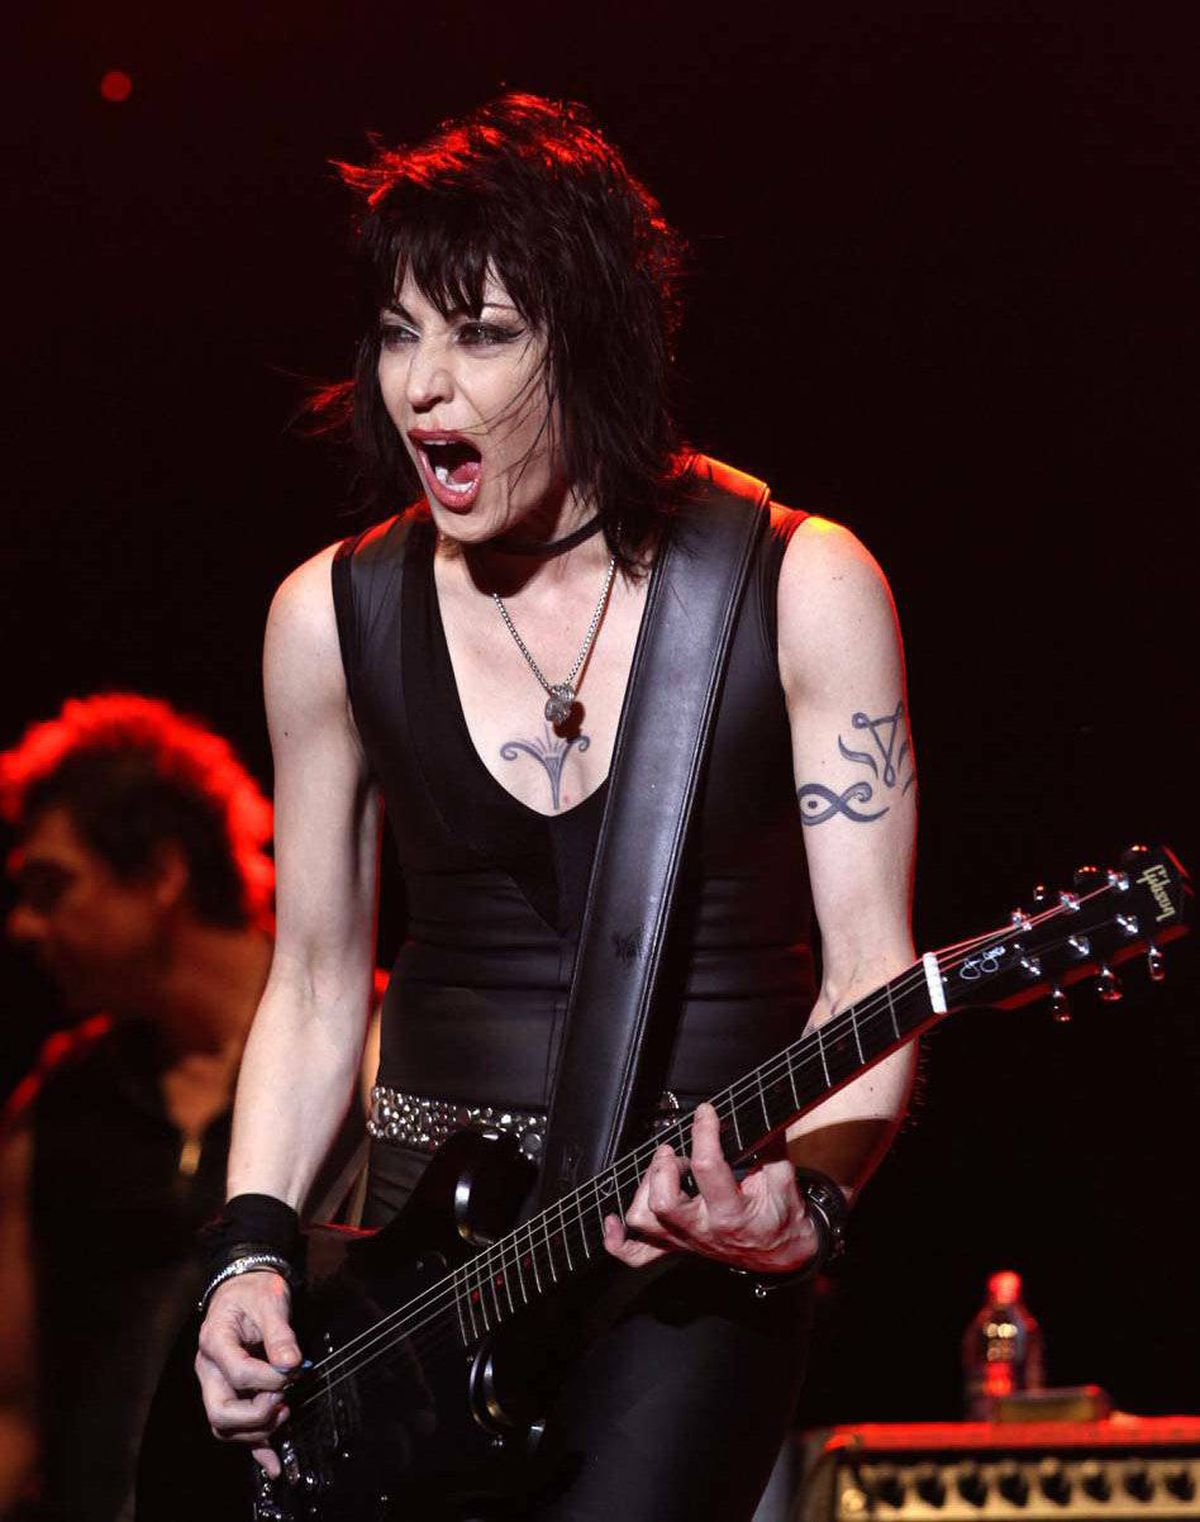 Also not getting the nod this year is Joan Jett of Joan Jett and the Blackhearts, seen here performing at the Cisco Ottawa Bluesfest in 2010.